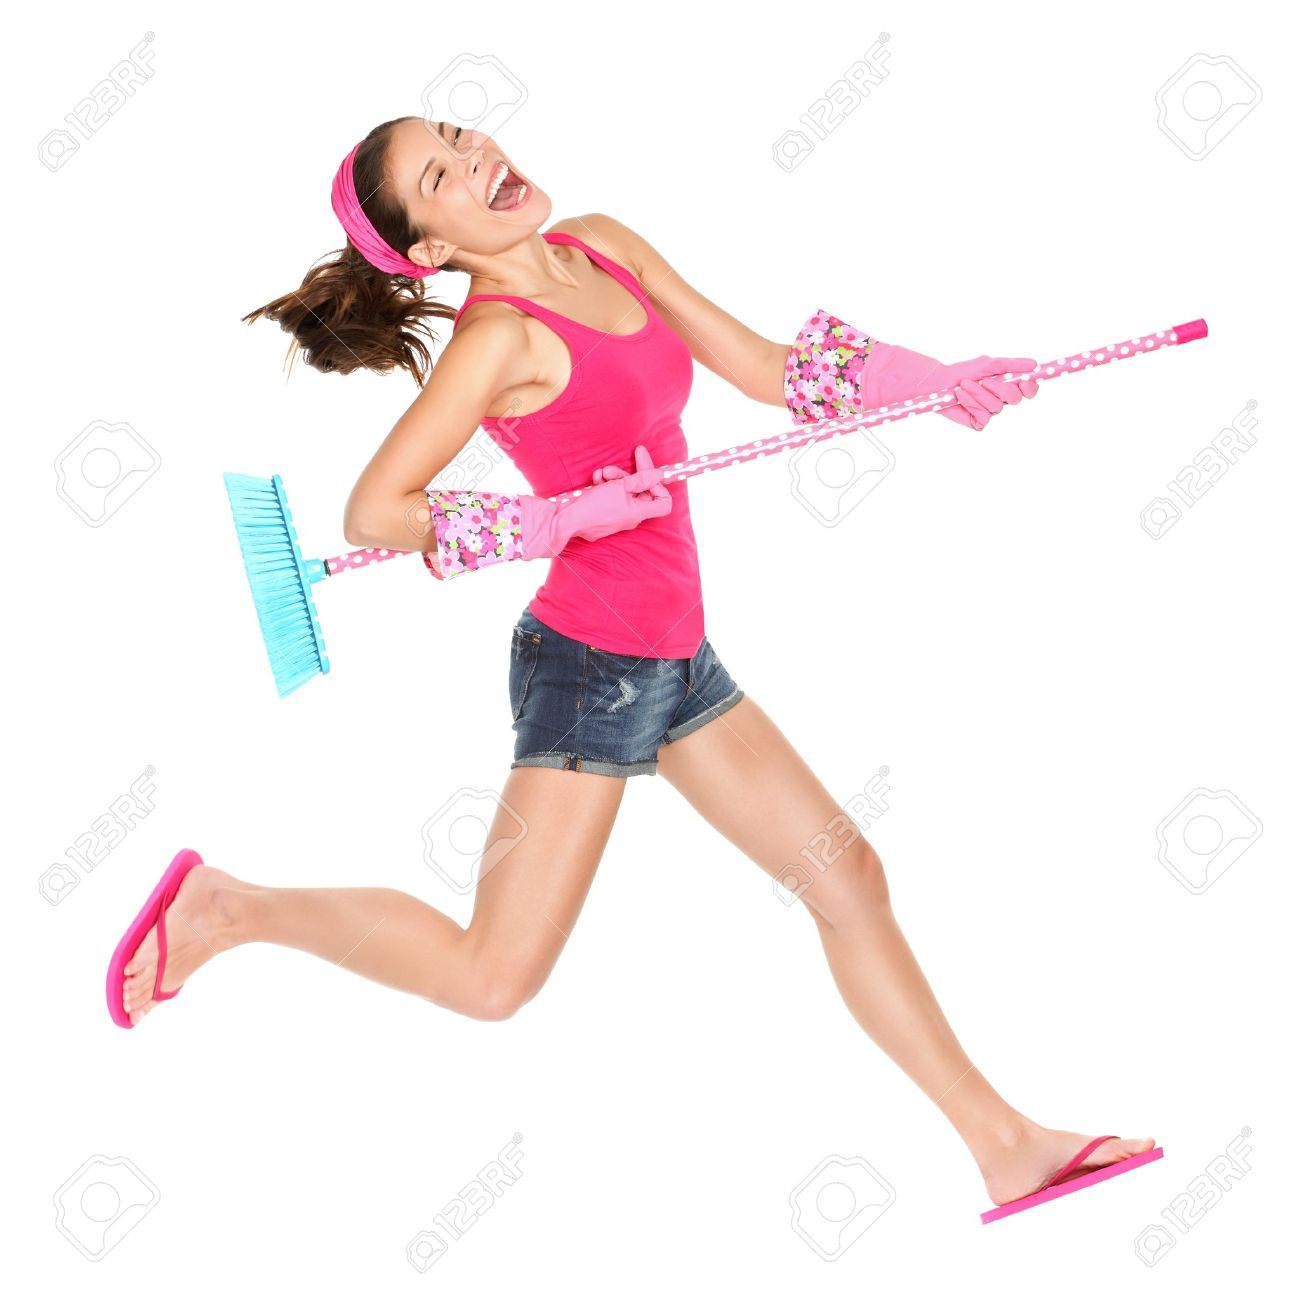 Cleaning woman jumping happy excited during spring cleaning fun. Stock Photo - 12357188